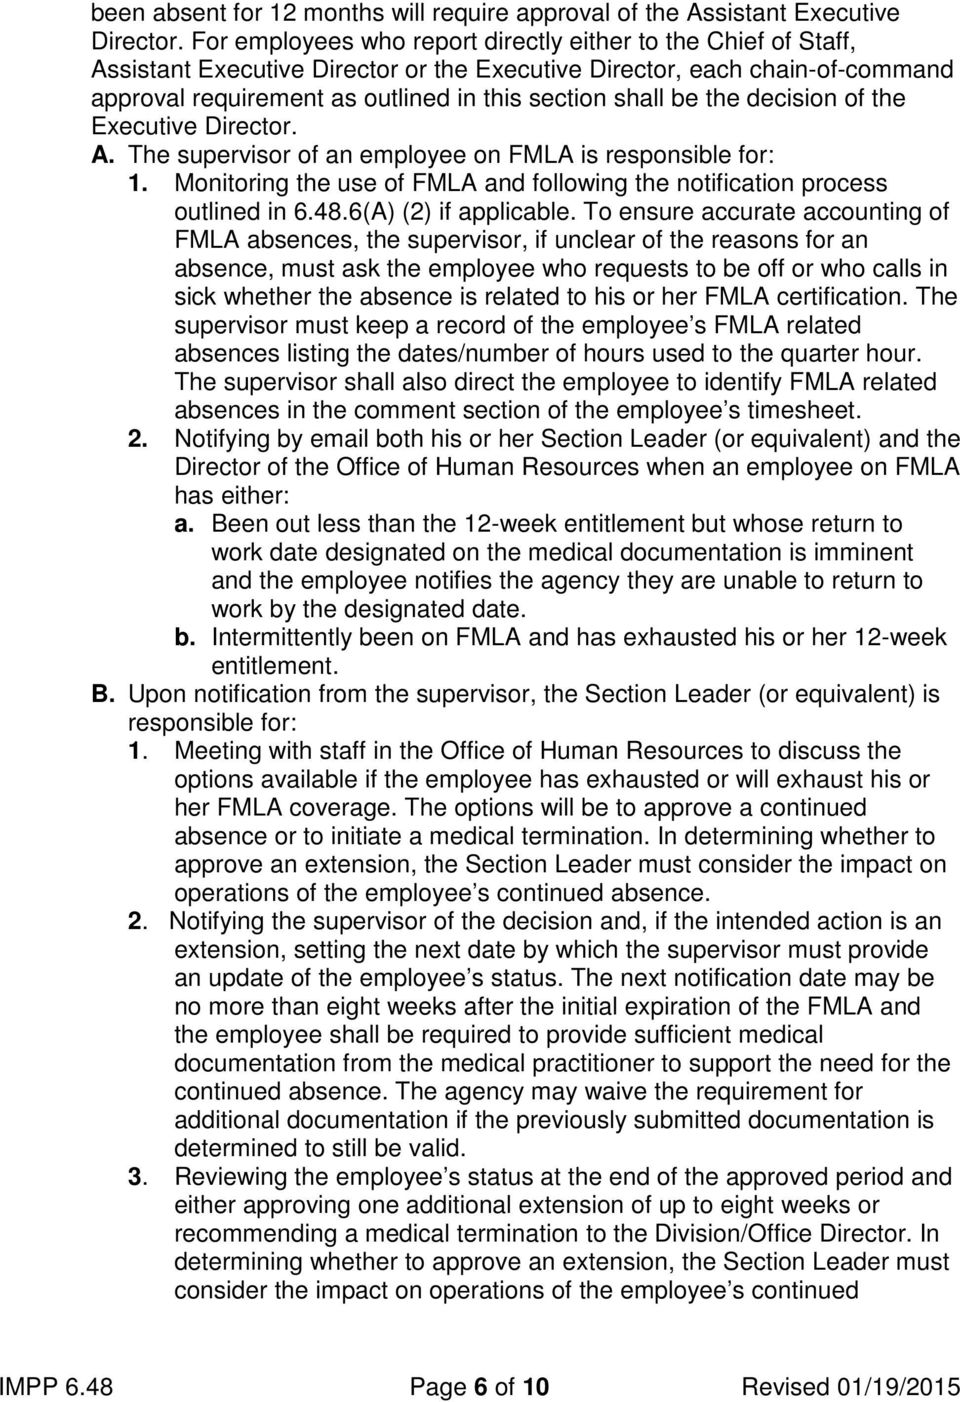 the decision of the Executive Director. A. The supervisor of an employee on FMLA is responsible for: 1. Monitoring the use of FMLA and following the notification process outlined in 6.48.